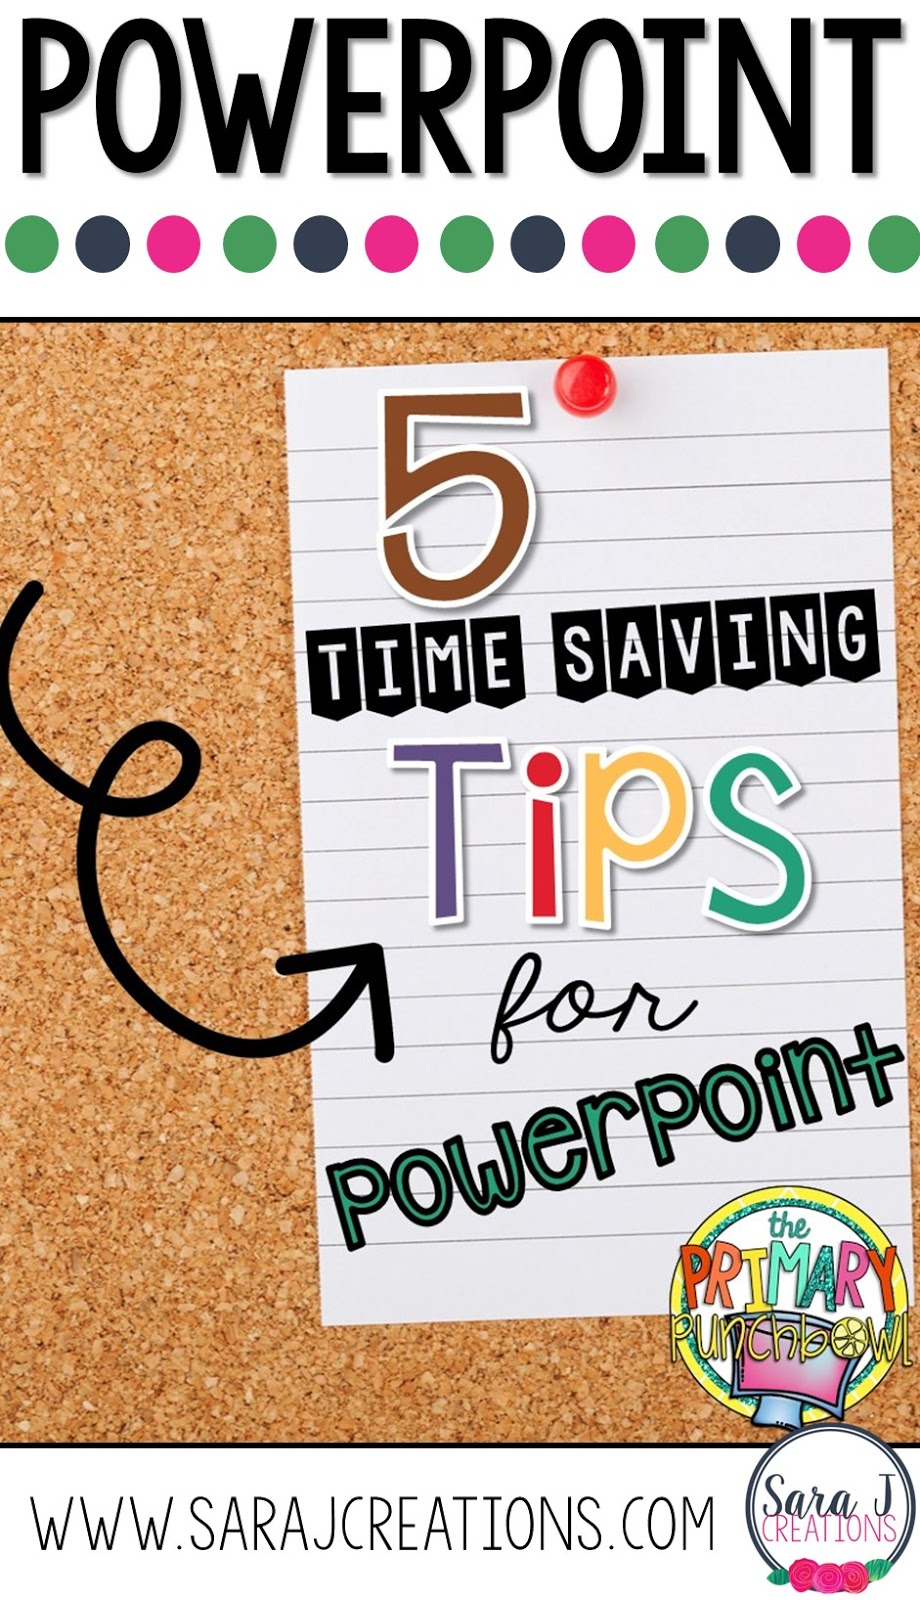 Tips for saving time on Microsoft Power Point